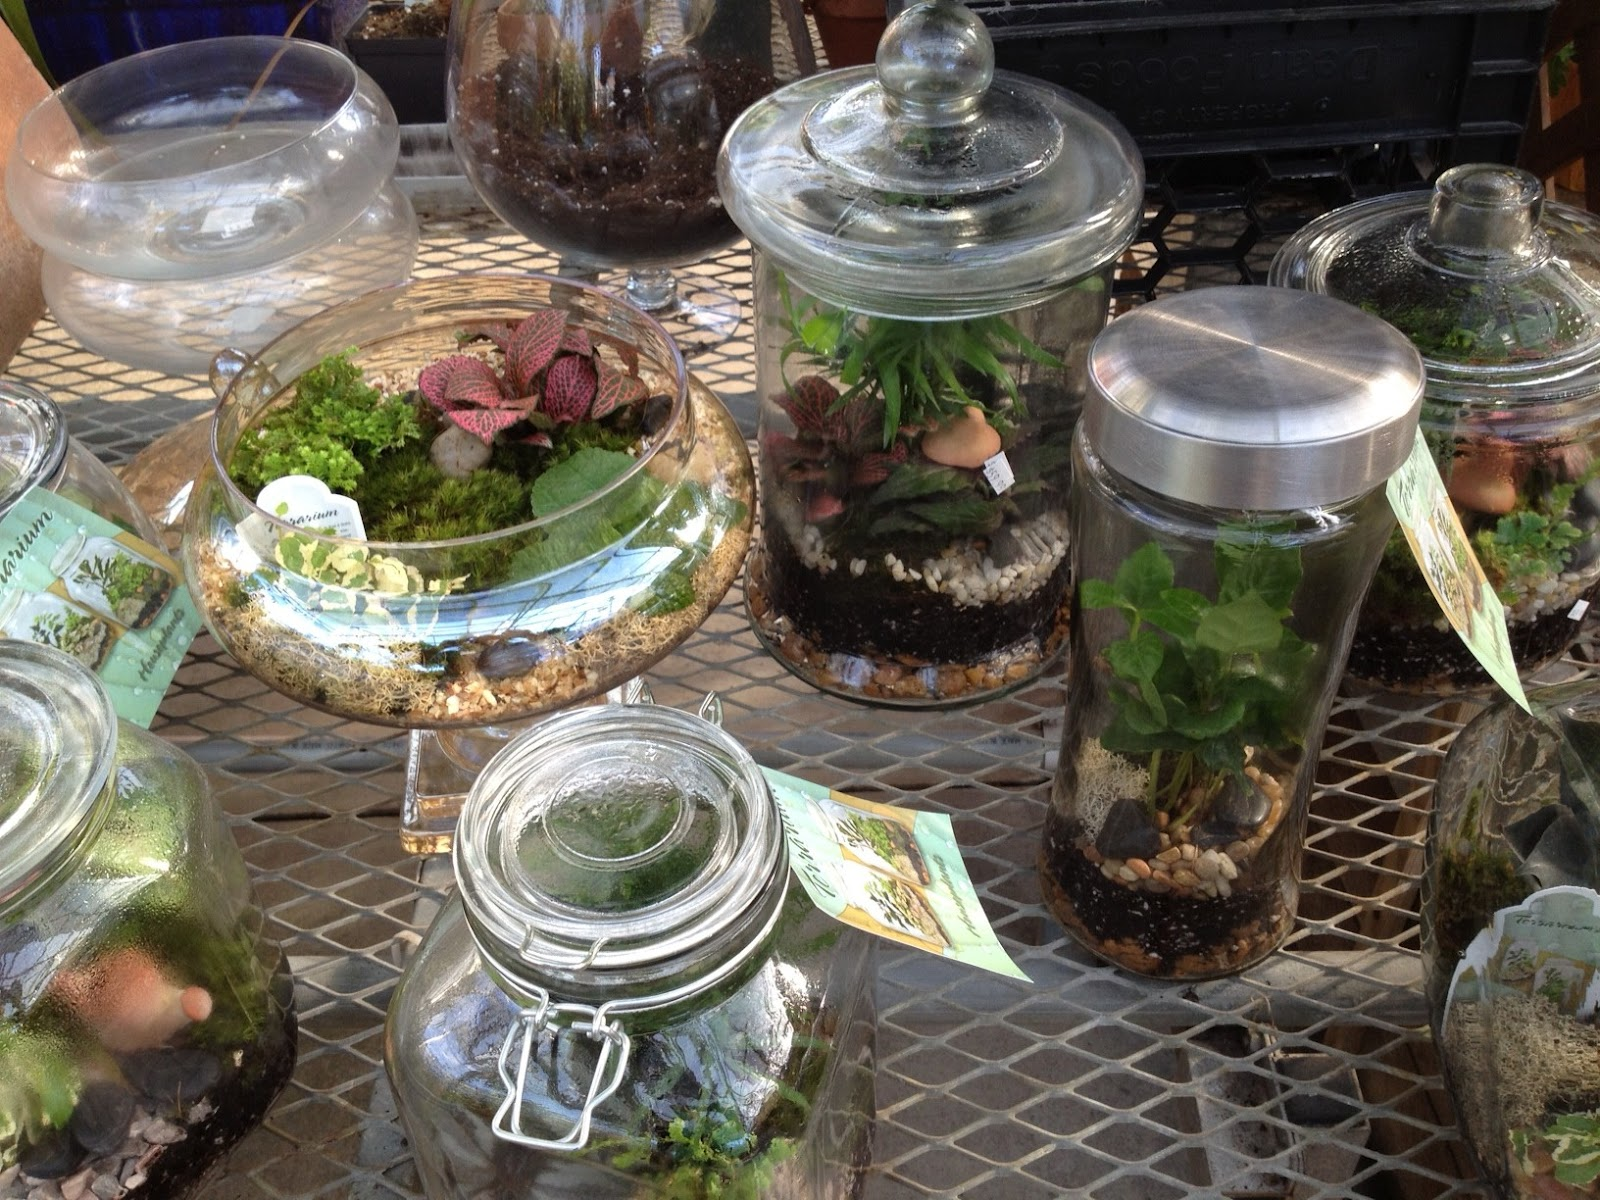 Indoor Garden Center Indoor gardening fun how about a terrarium mark saidnaweys you can visit your local garden center and purchase all the materials you need to make your own little garden dome workwithnaturefo